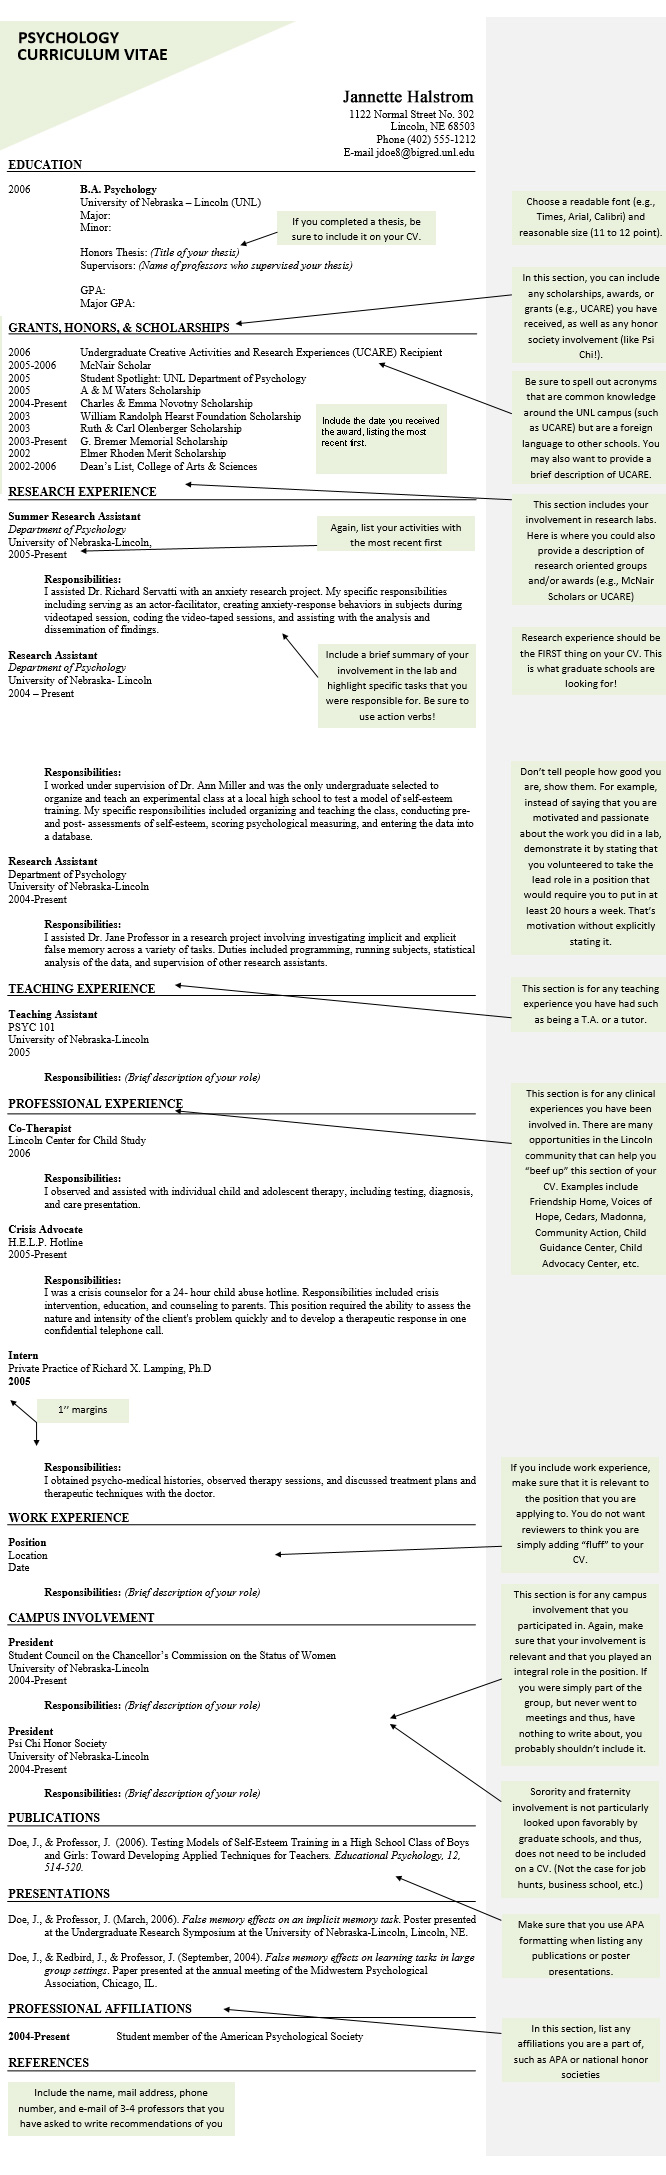 psychology cv and resume samples templates tips sample example of best for fresh graduate Resume Psychology Resume Sample